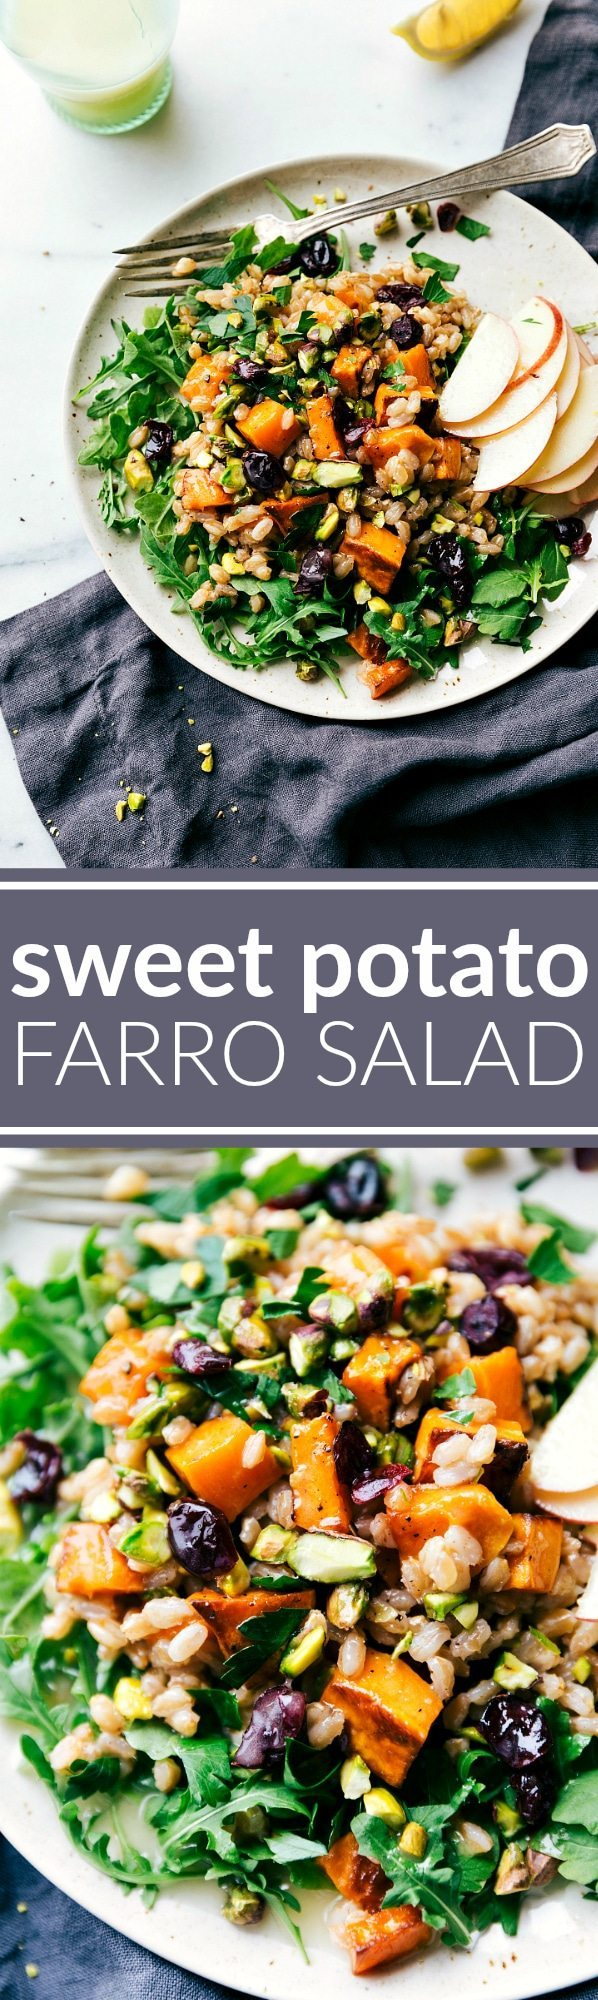 ROASTED SWEET POTATO SALAD. A hearty, healthy, and filling salad -- sweet apple cider farro, roasted sweet potatoes, arugula, and an easy blender lemon dressing. via chelseasmessyapron.com